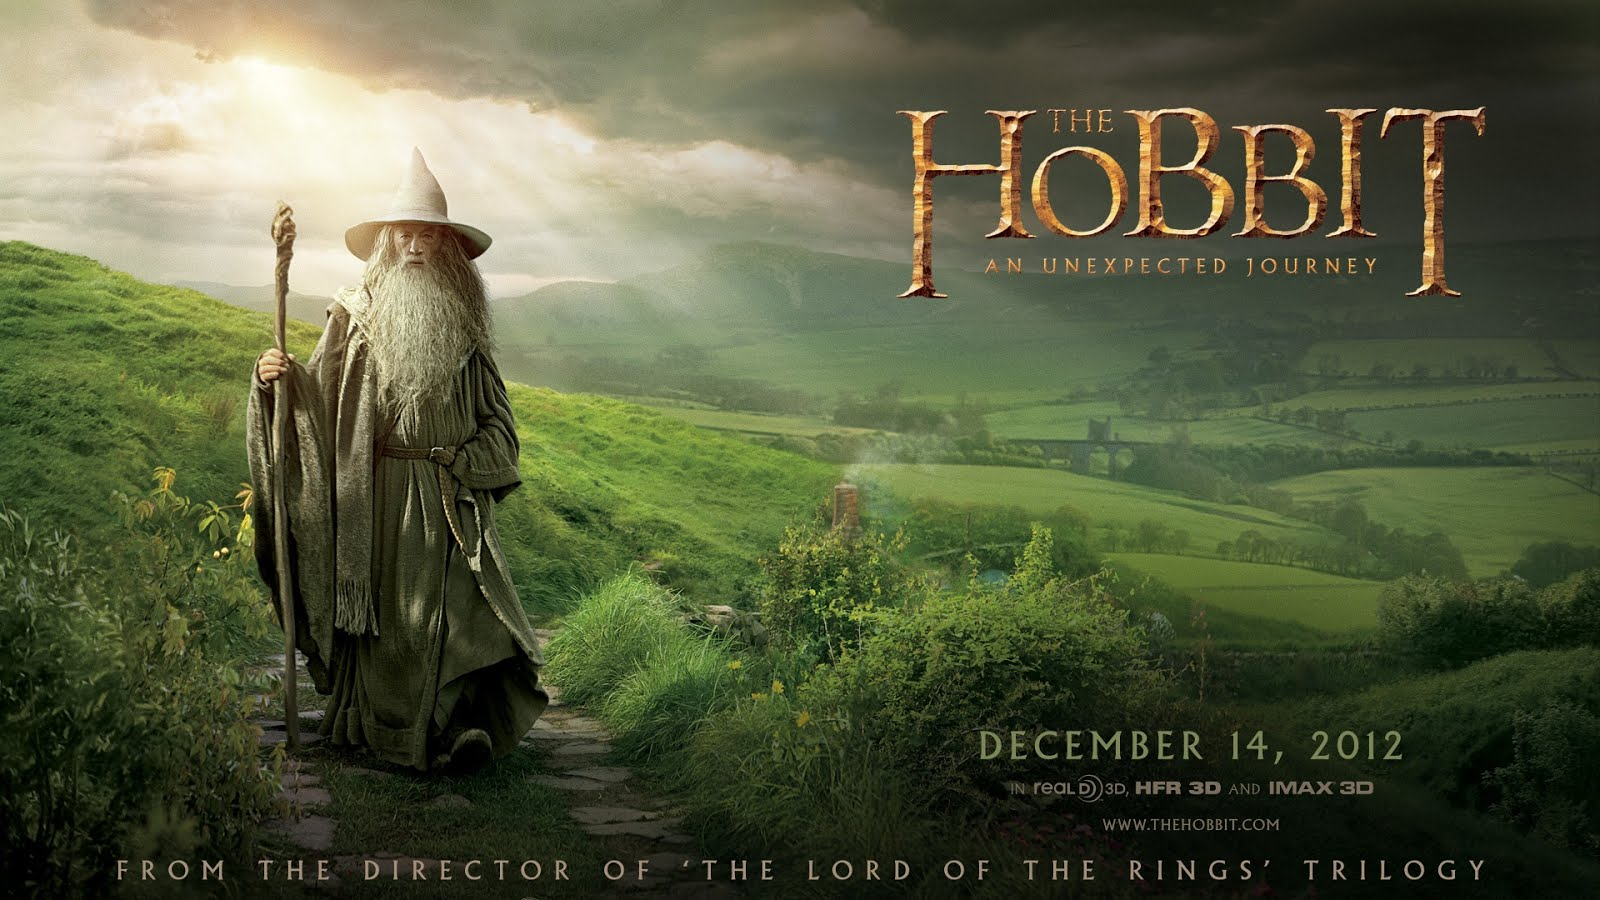 http://1.bp.blogspot.com/-yw4CfGfAEIw/UJKEWA0gBHI/AAAAAAAAEDI/oF5yiZMUsyY/s1600/the_hobbit_movie-1920x1080.jpg